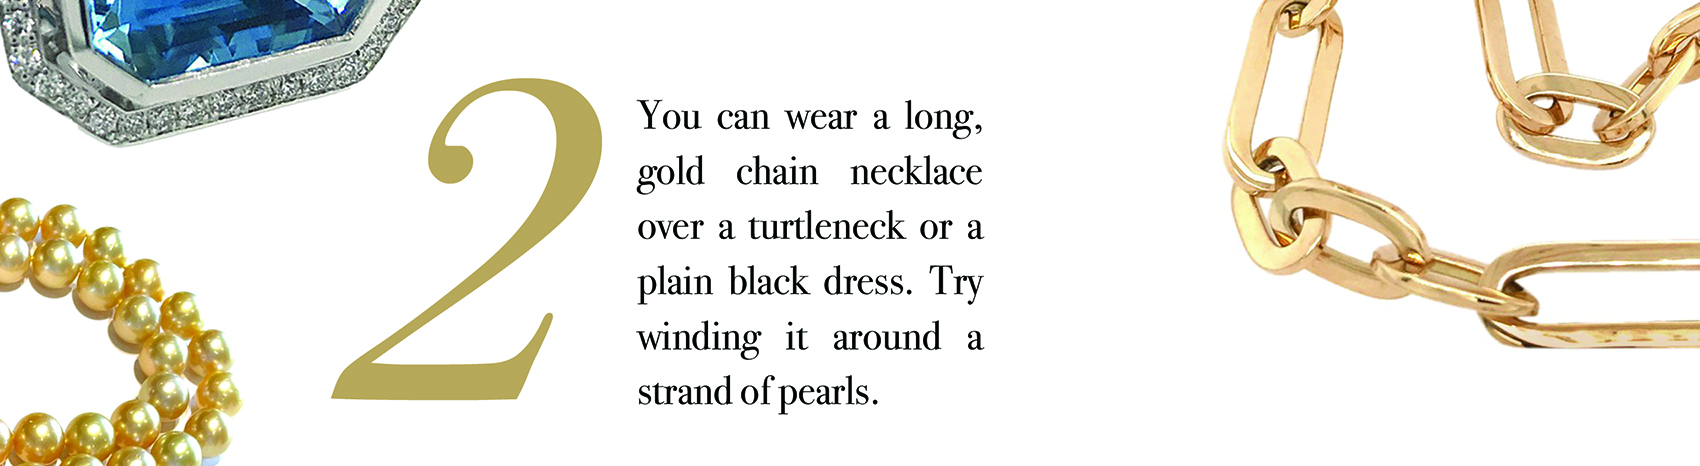 Your Jewelry Wardrobe Tip #2: You can wear a long, gold chain necklace over a turtleneck or a plain black dress. Try winding it around a strand of pearls.